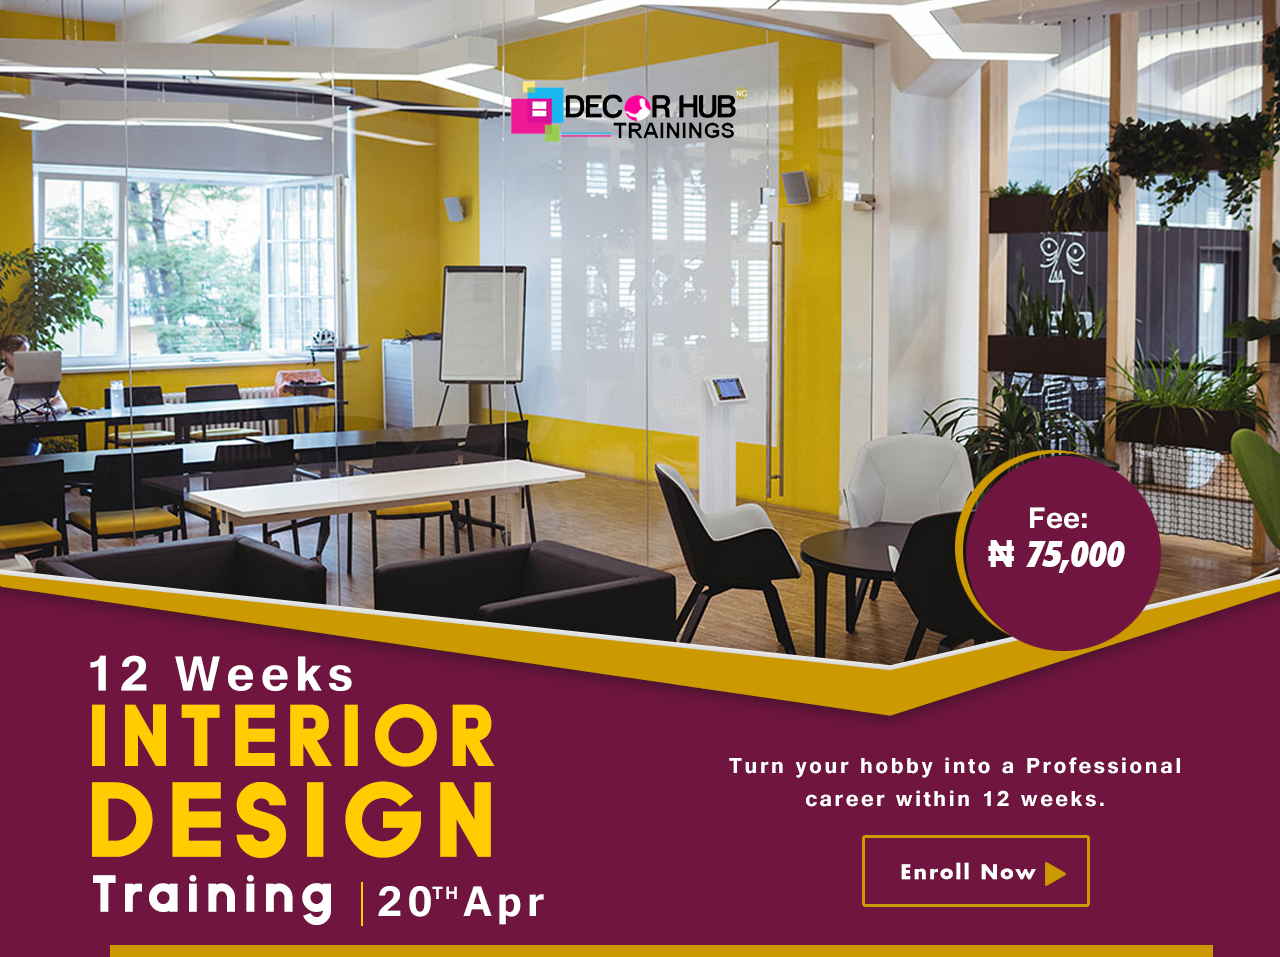 12 Weeks Interior Design Training Post free event in Nigeria using tickethub.ng, buy and sell tickets to event